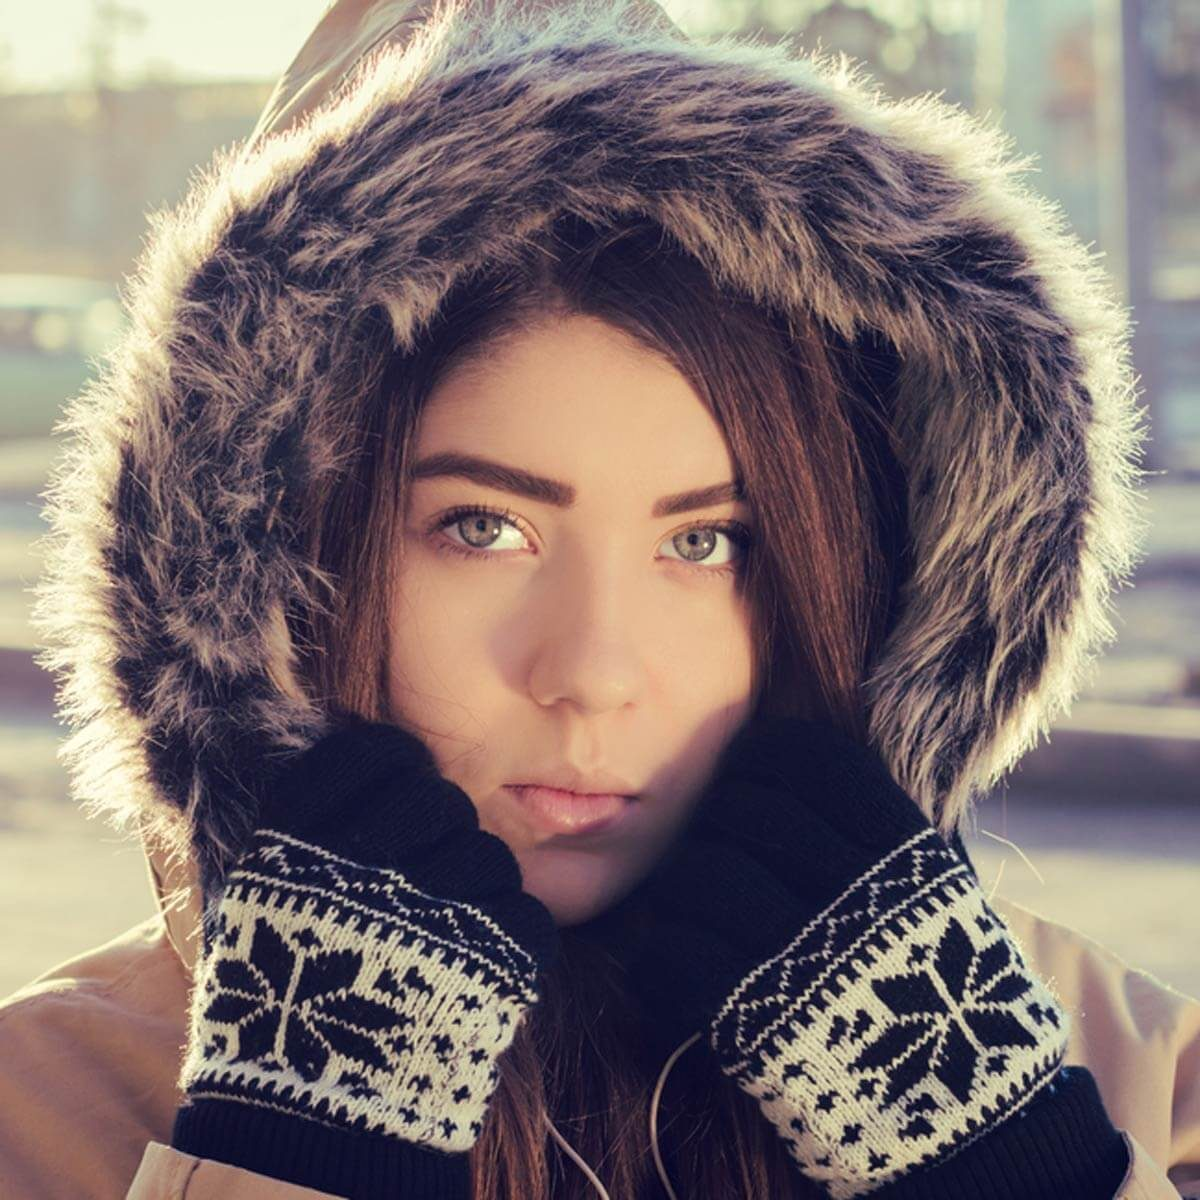 shutterstock_346216421 women in winter coat furry hood